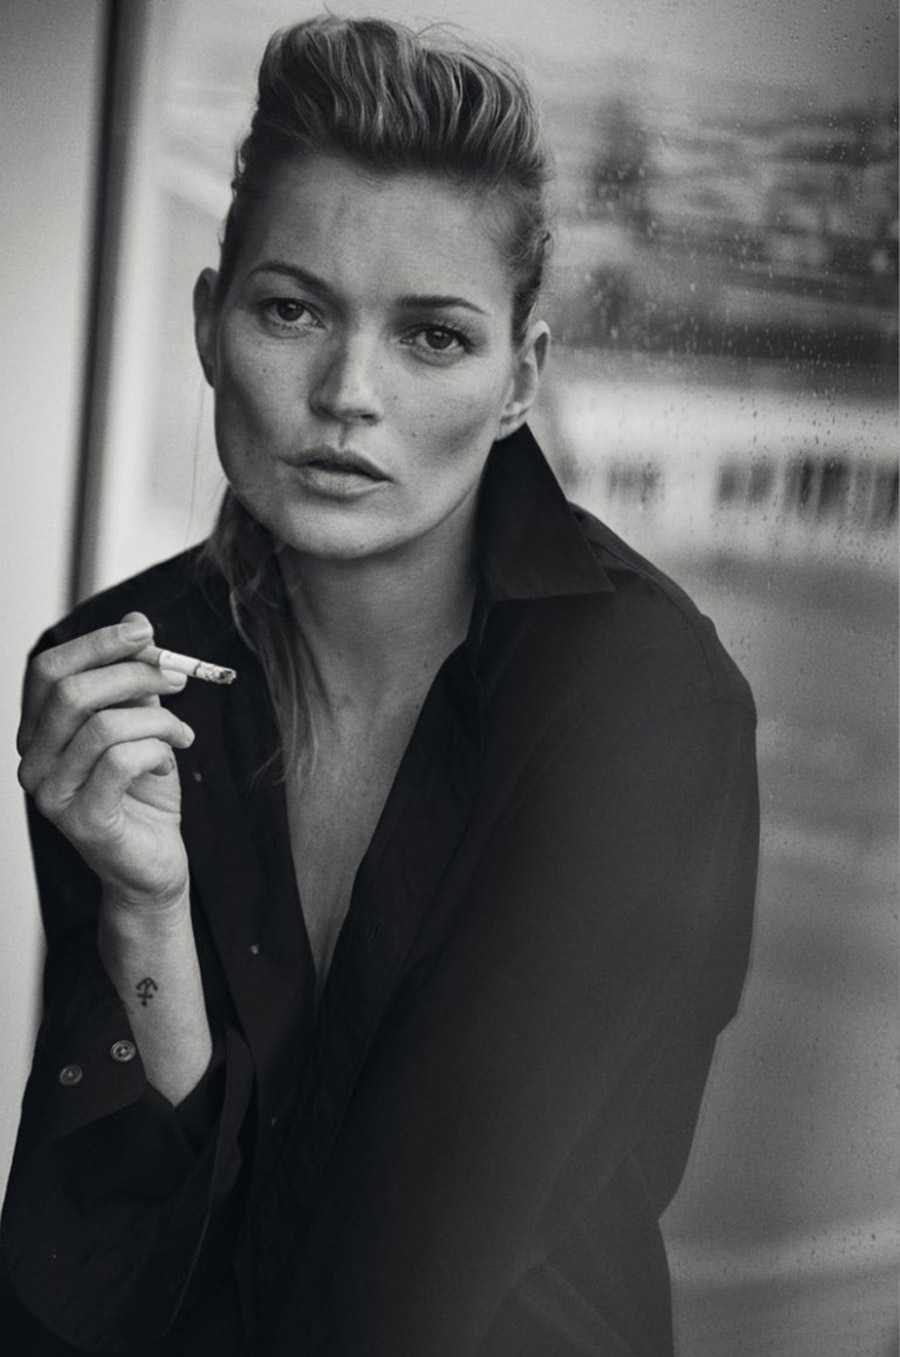 004-Peter_Lindbergh_Photographer